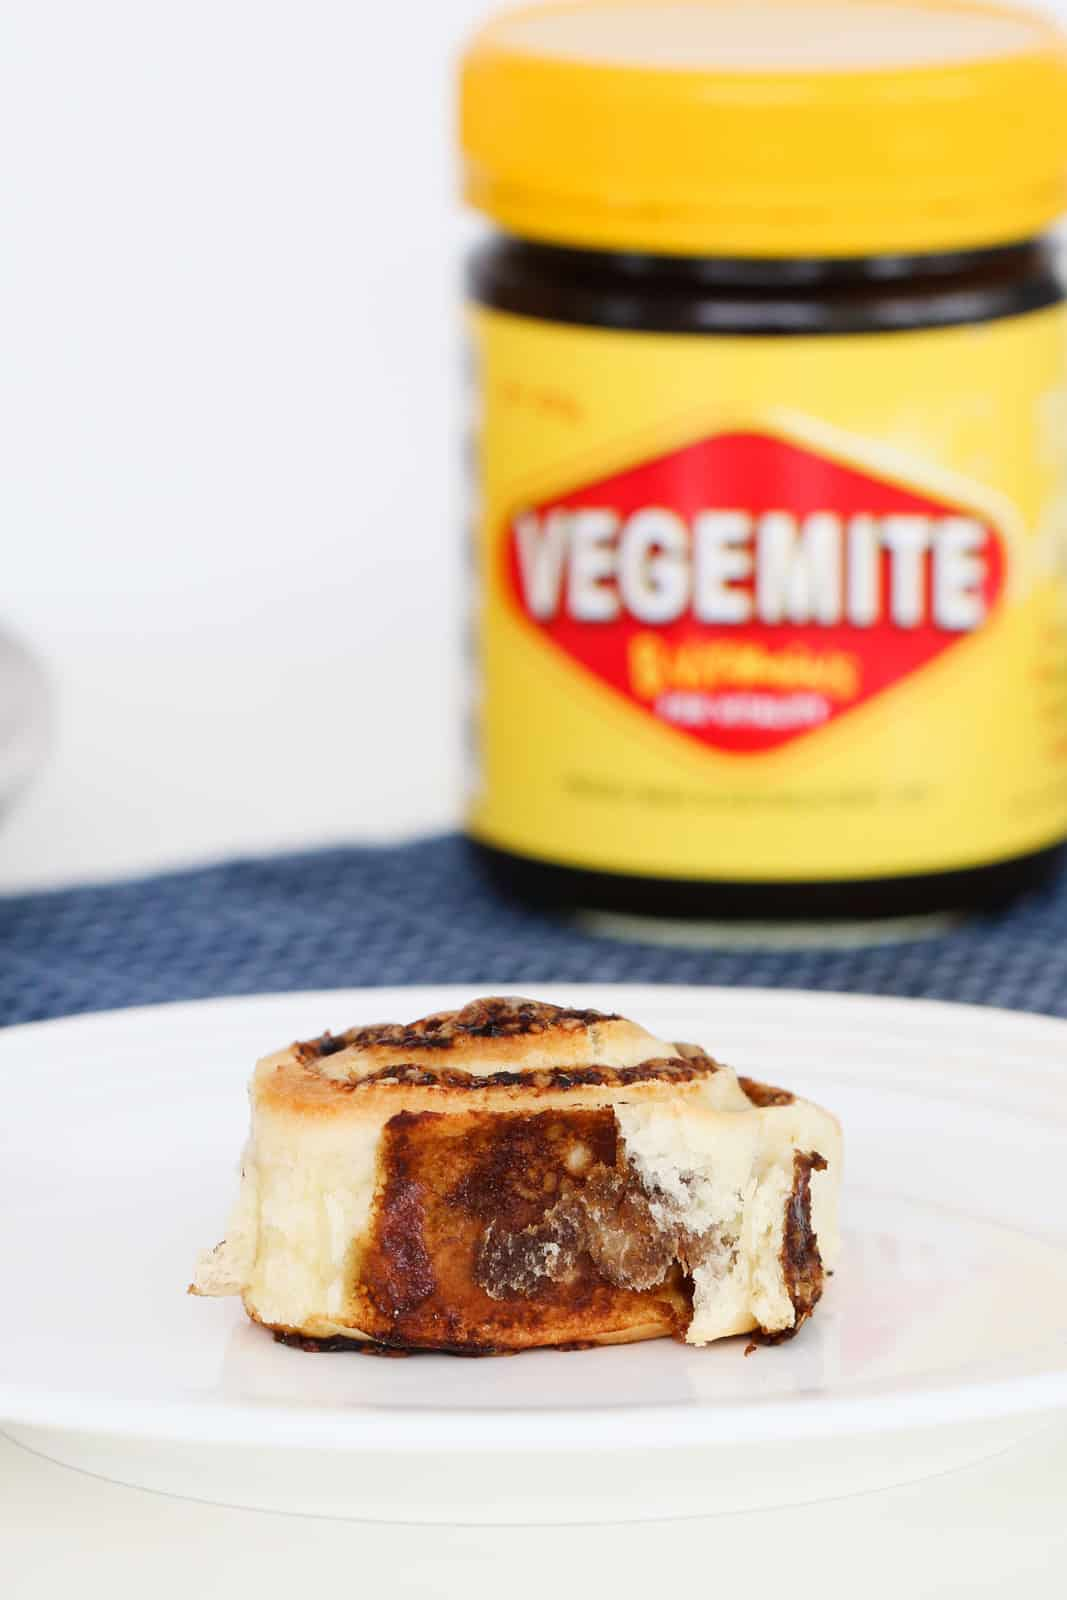 A scroll with a cheese and vegemite filling on a white plate in front of a slightly blurred jar of Vegemite